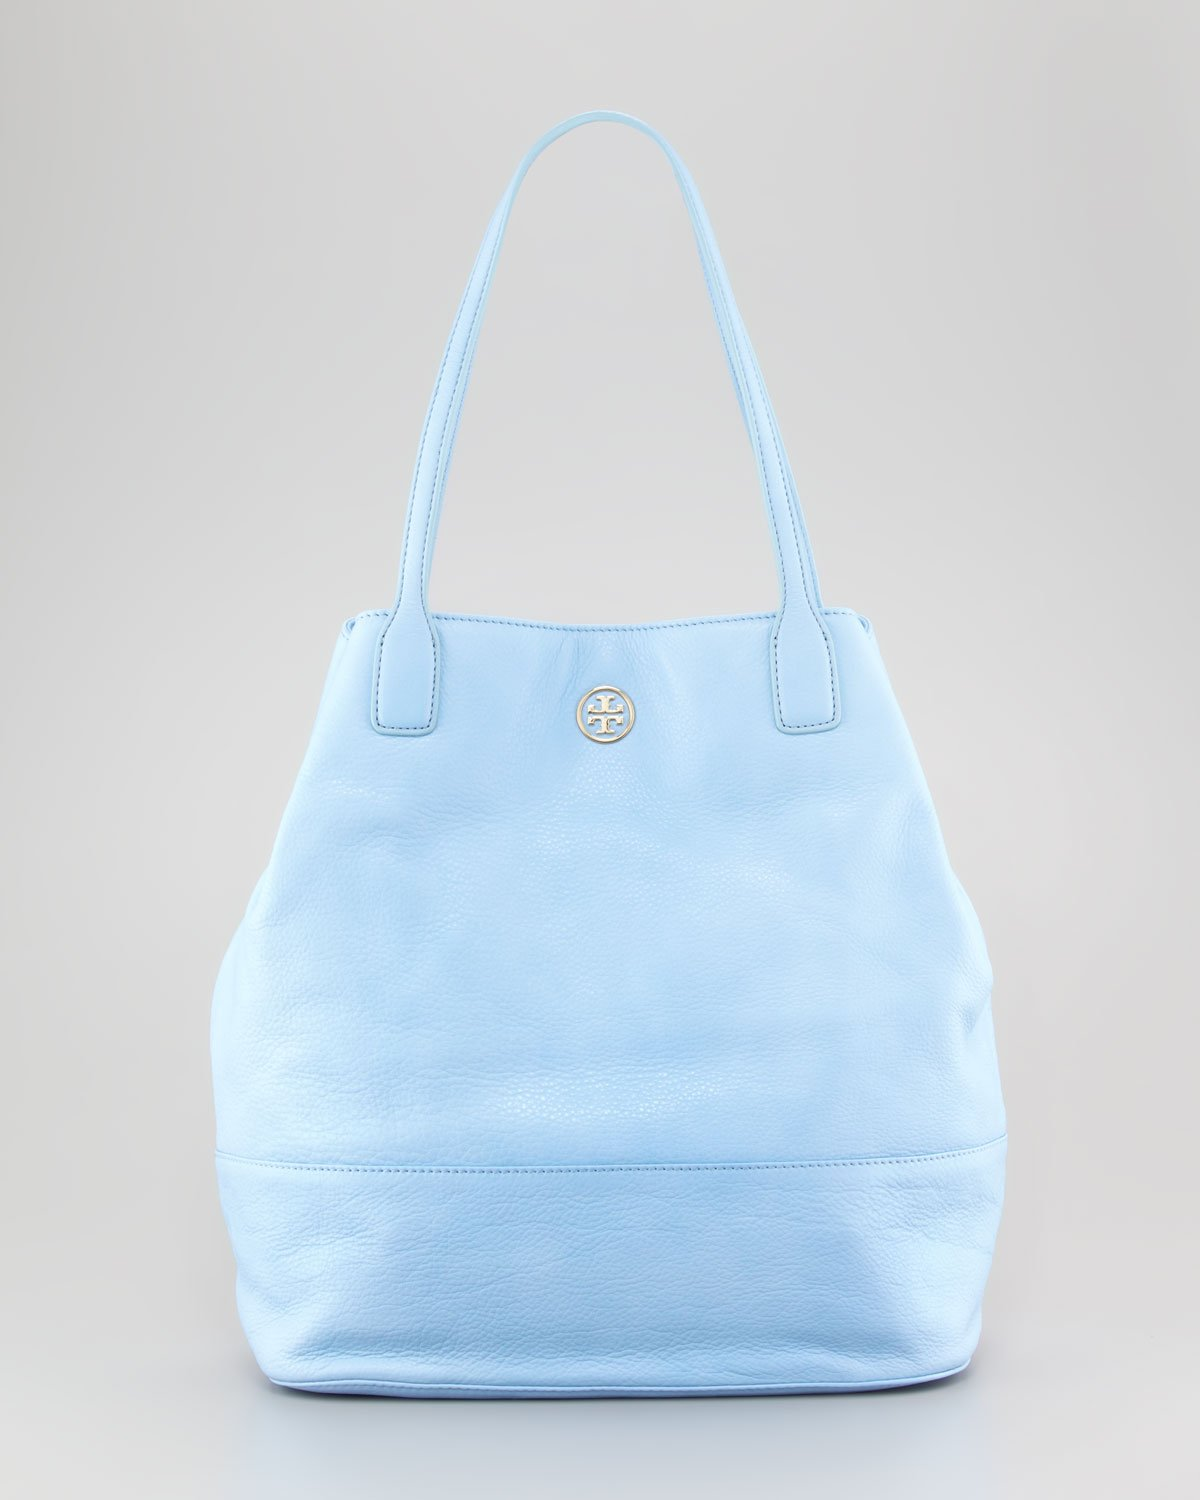 Lyst - Tory Burch Michelle Pebbled Leather Tote Bag Light Blue in Blue 948b5f6c13fc2